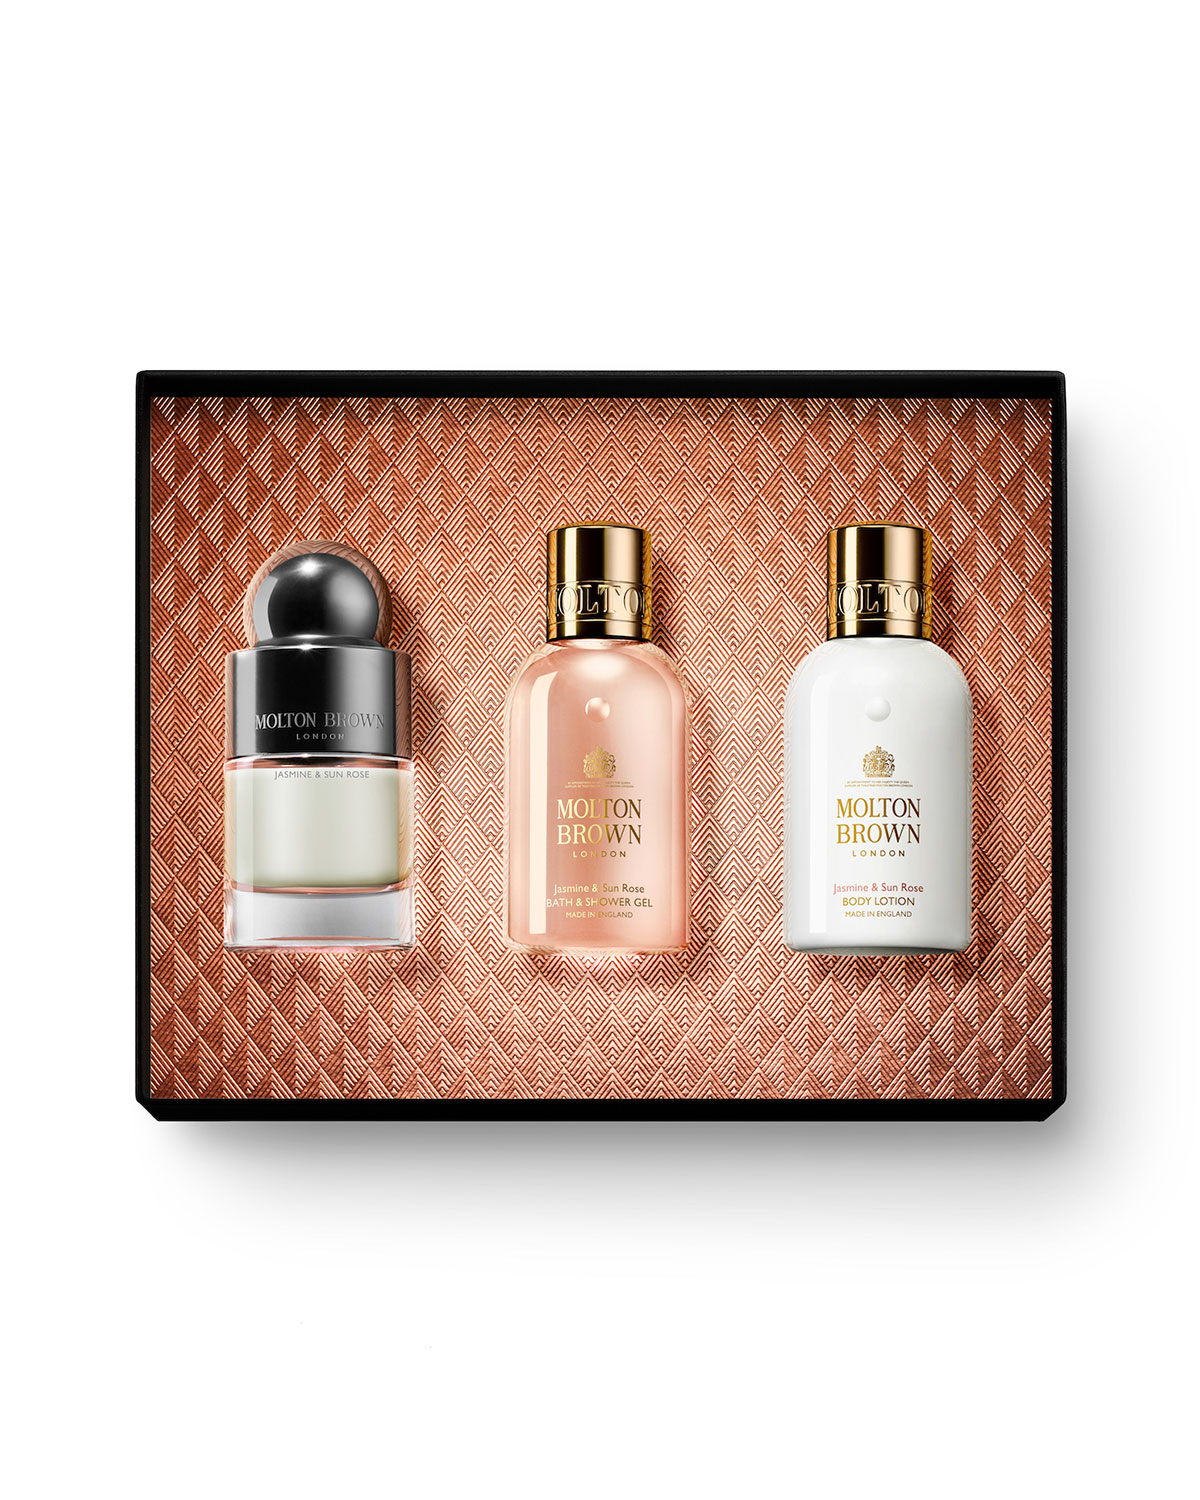 Jasmine & Sun Rose Eau de Toilette, 50 mL Jasmine & Sun Rose Bath & Shower Gel, 100 mL Jasmine & Sun Rose Body Lotion, 100 mL